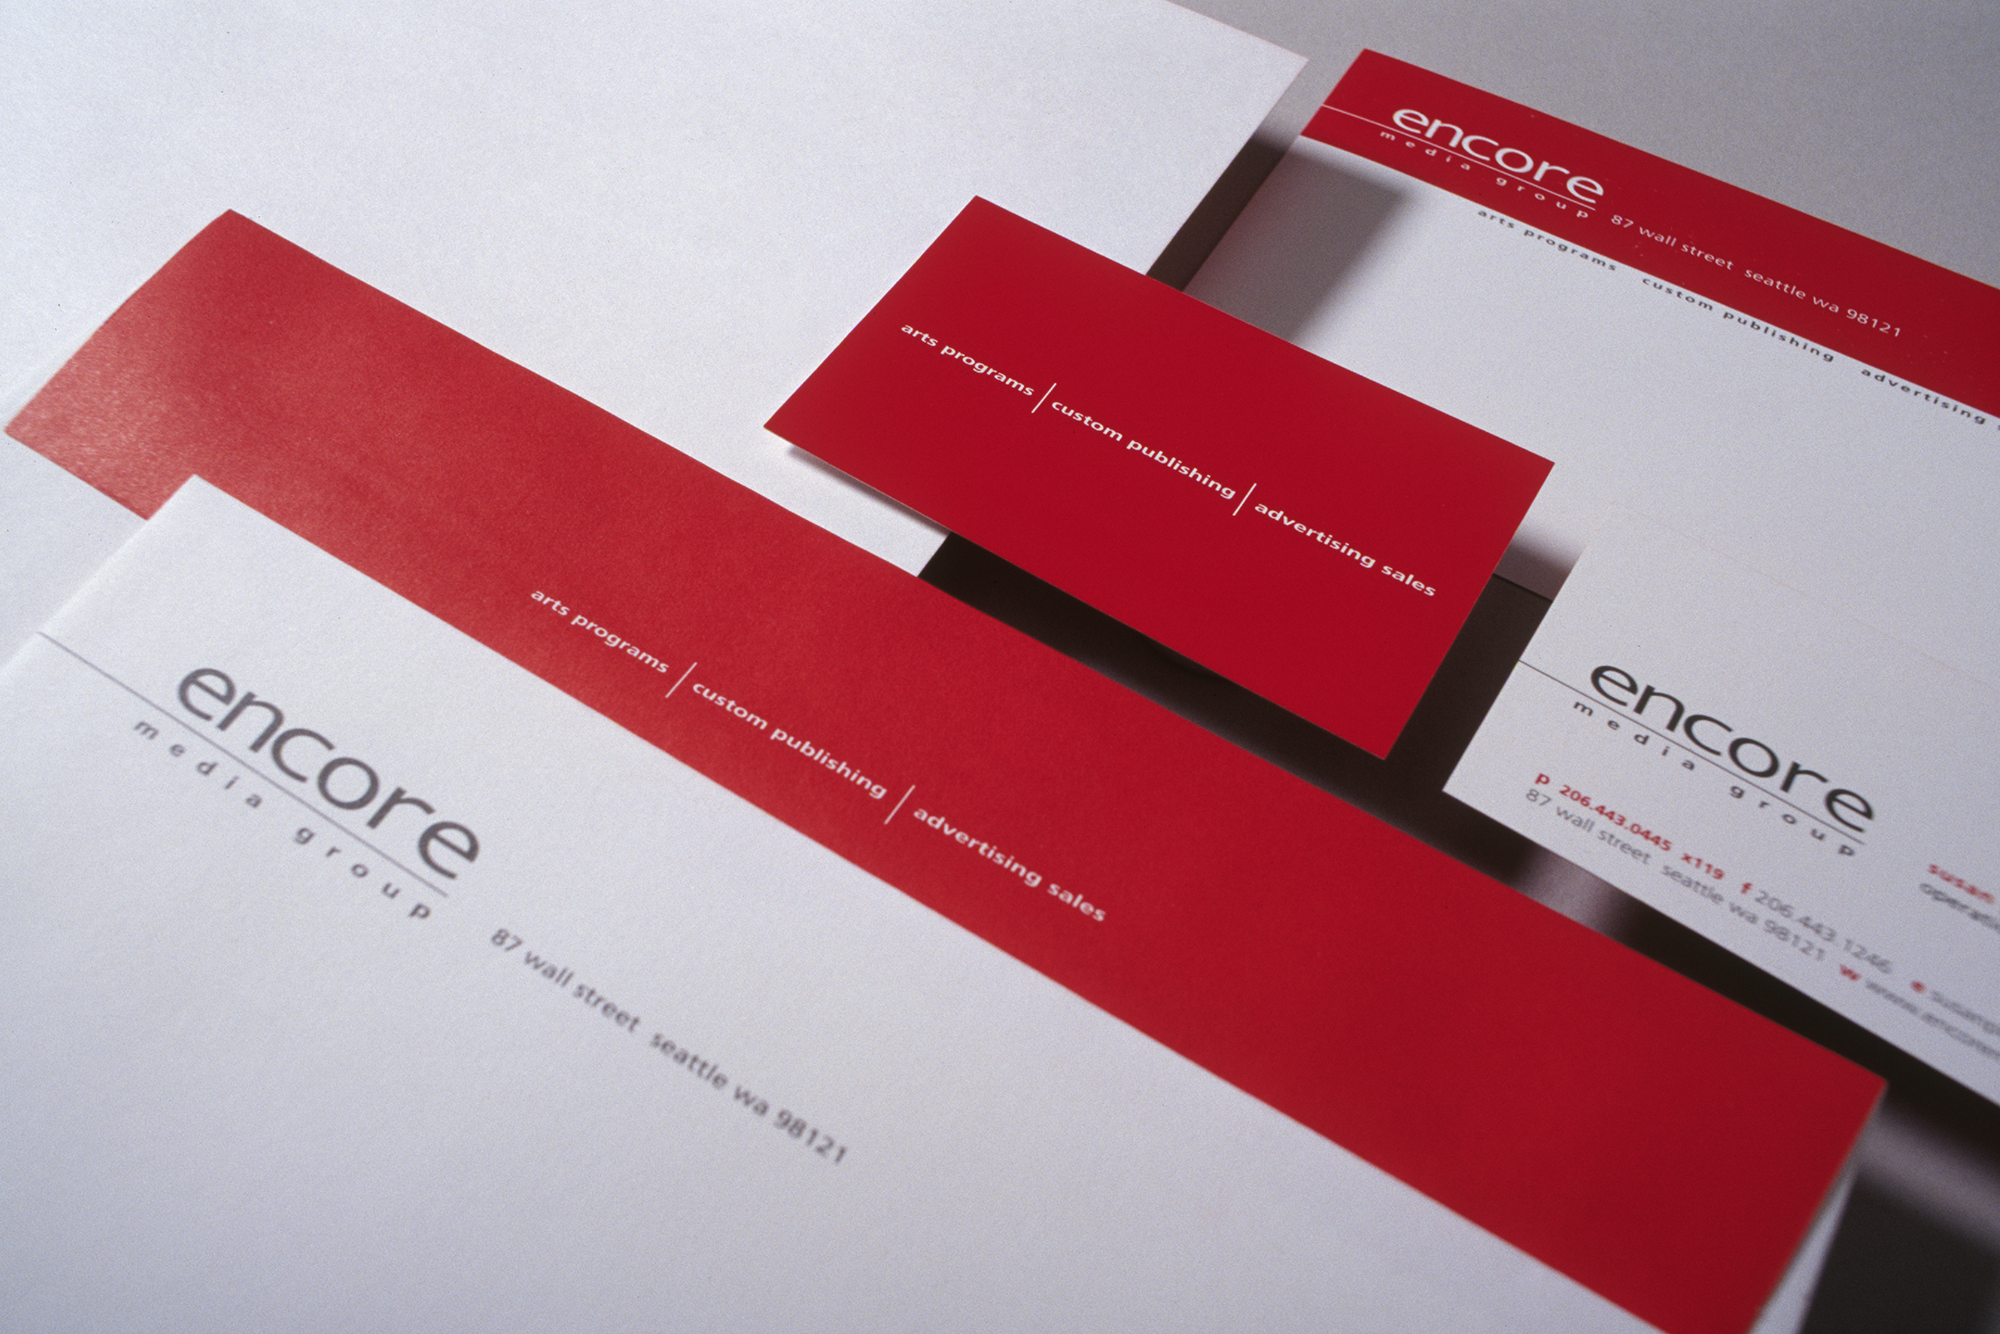 Encore Media Group | Identity